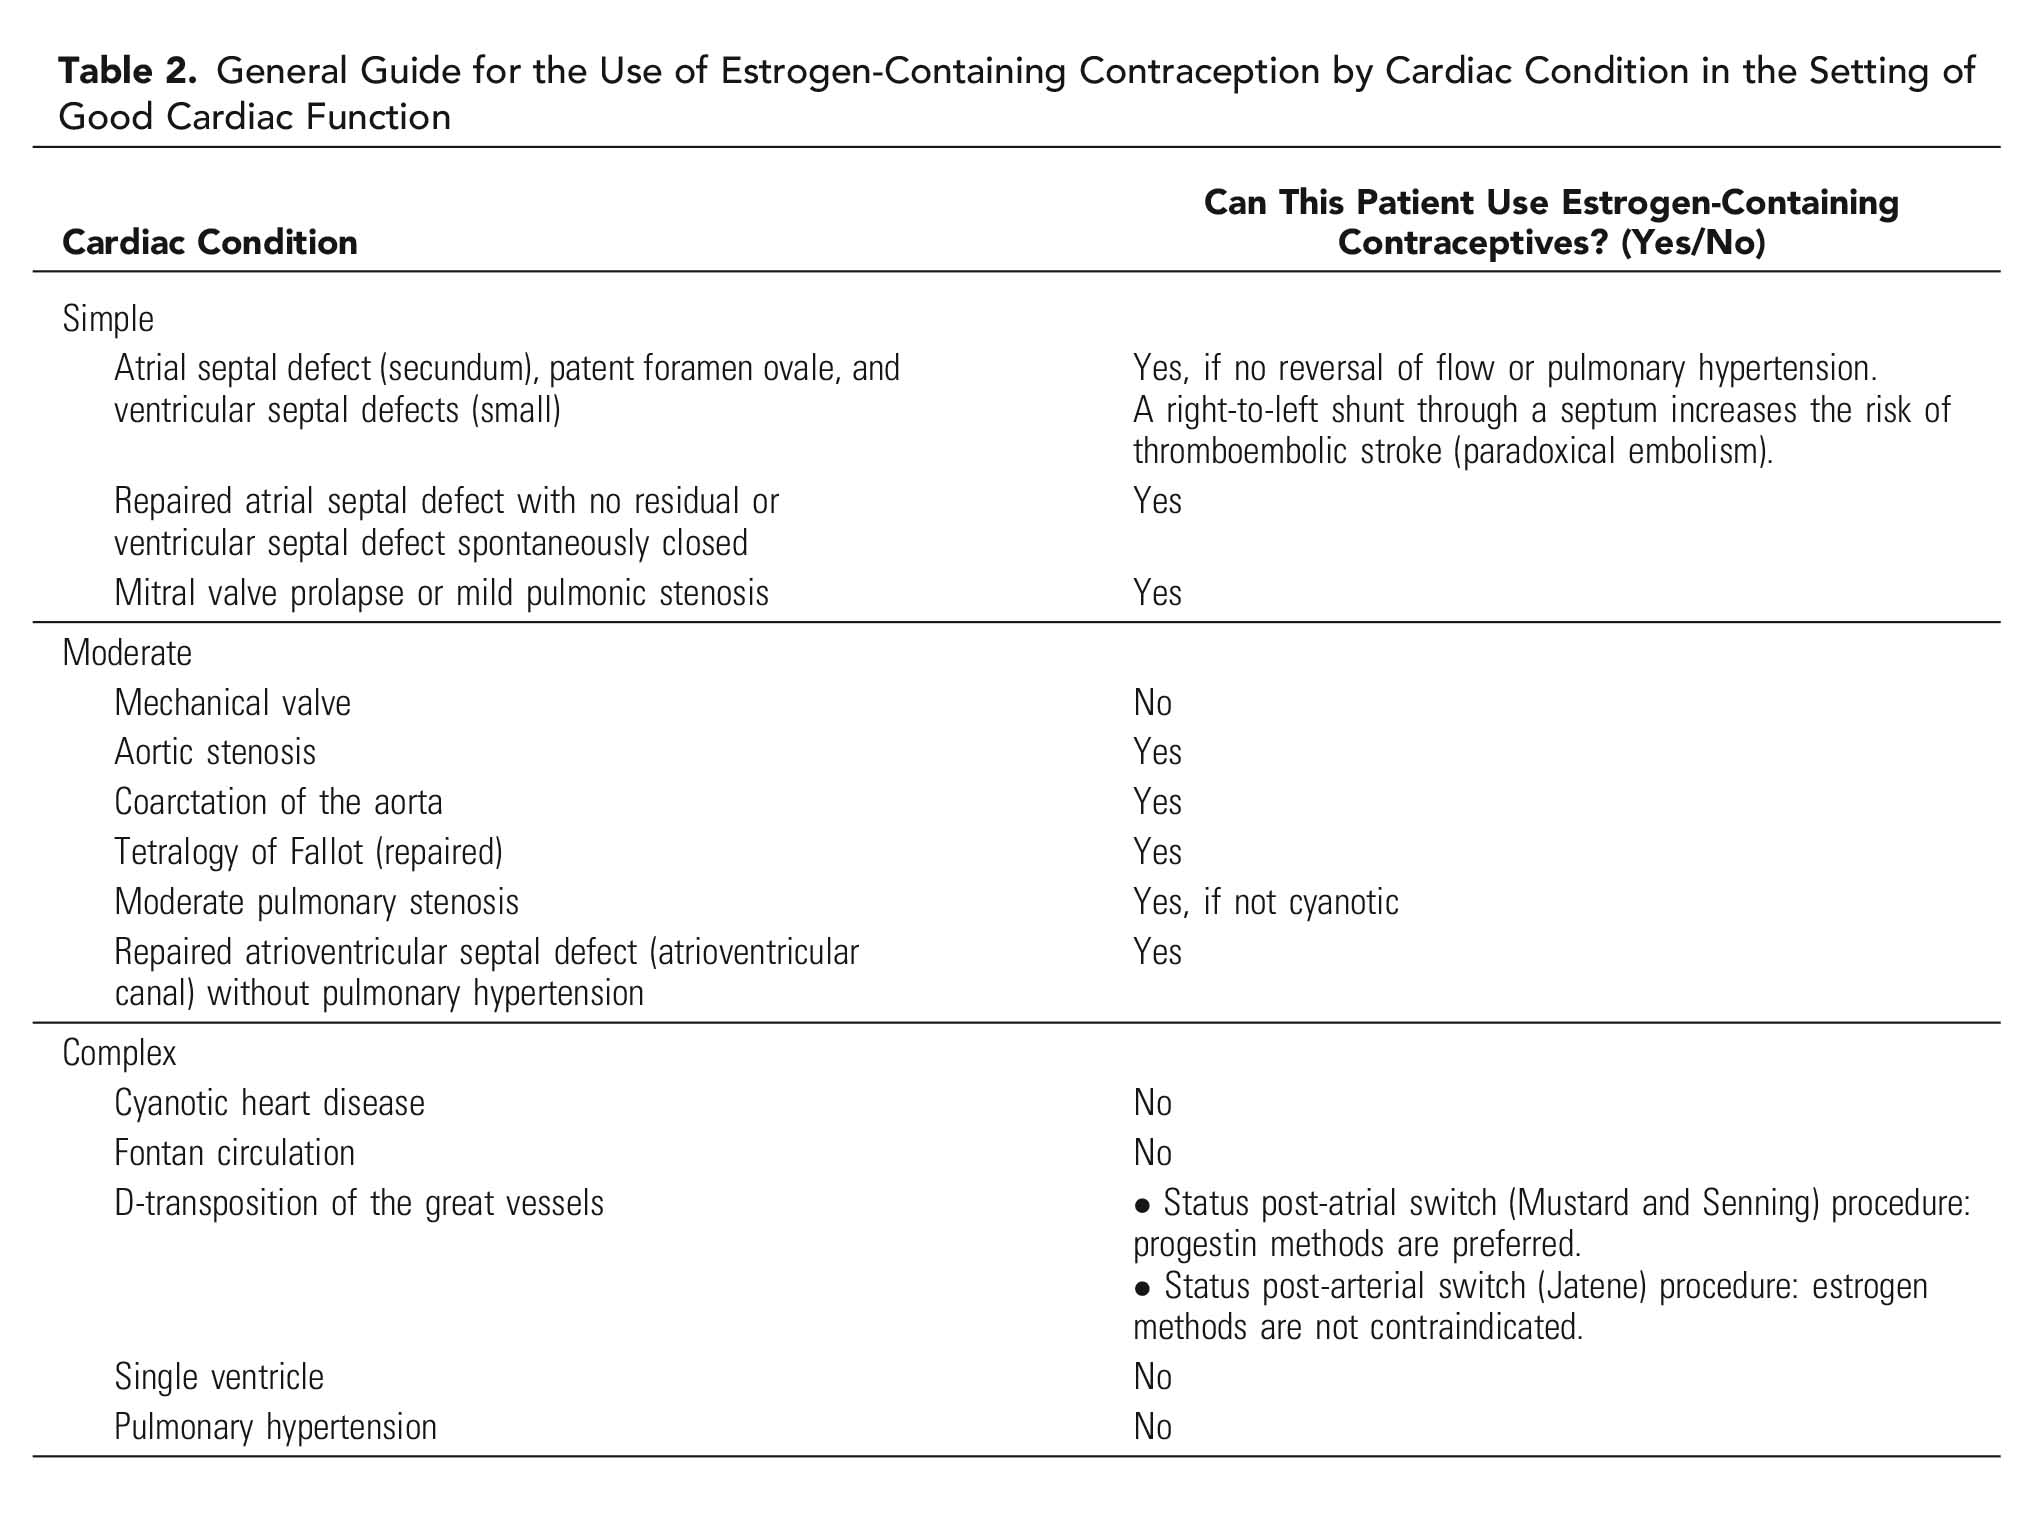 Gynecologic Considerations for Adolescents and Young Women With Cardiac Conditions